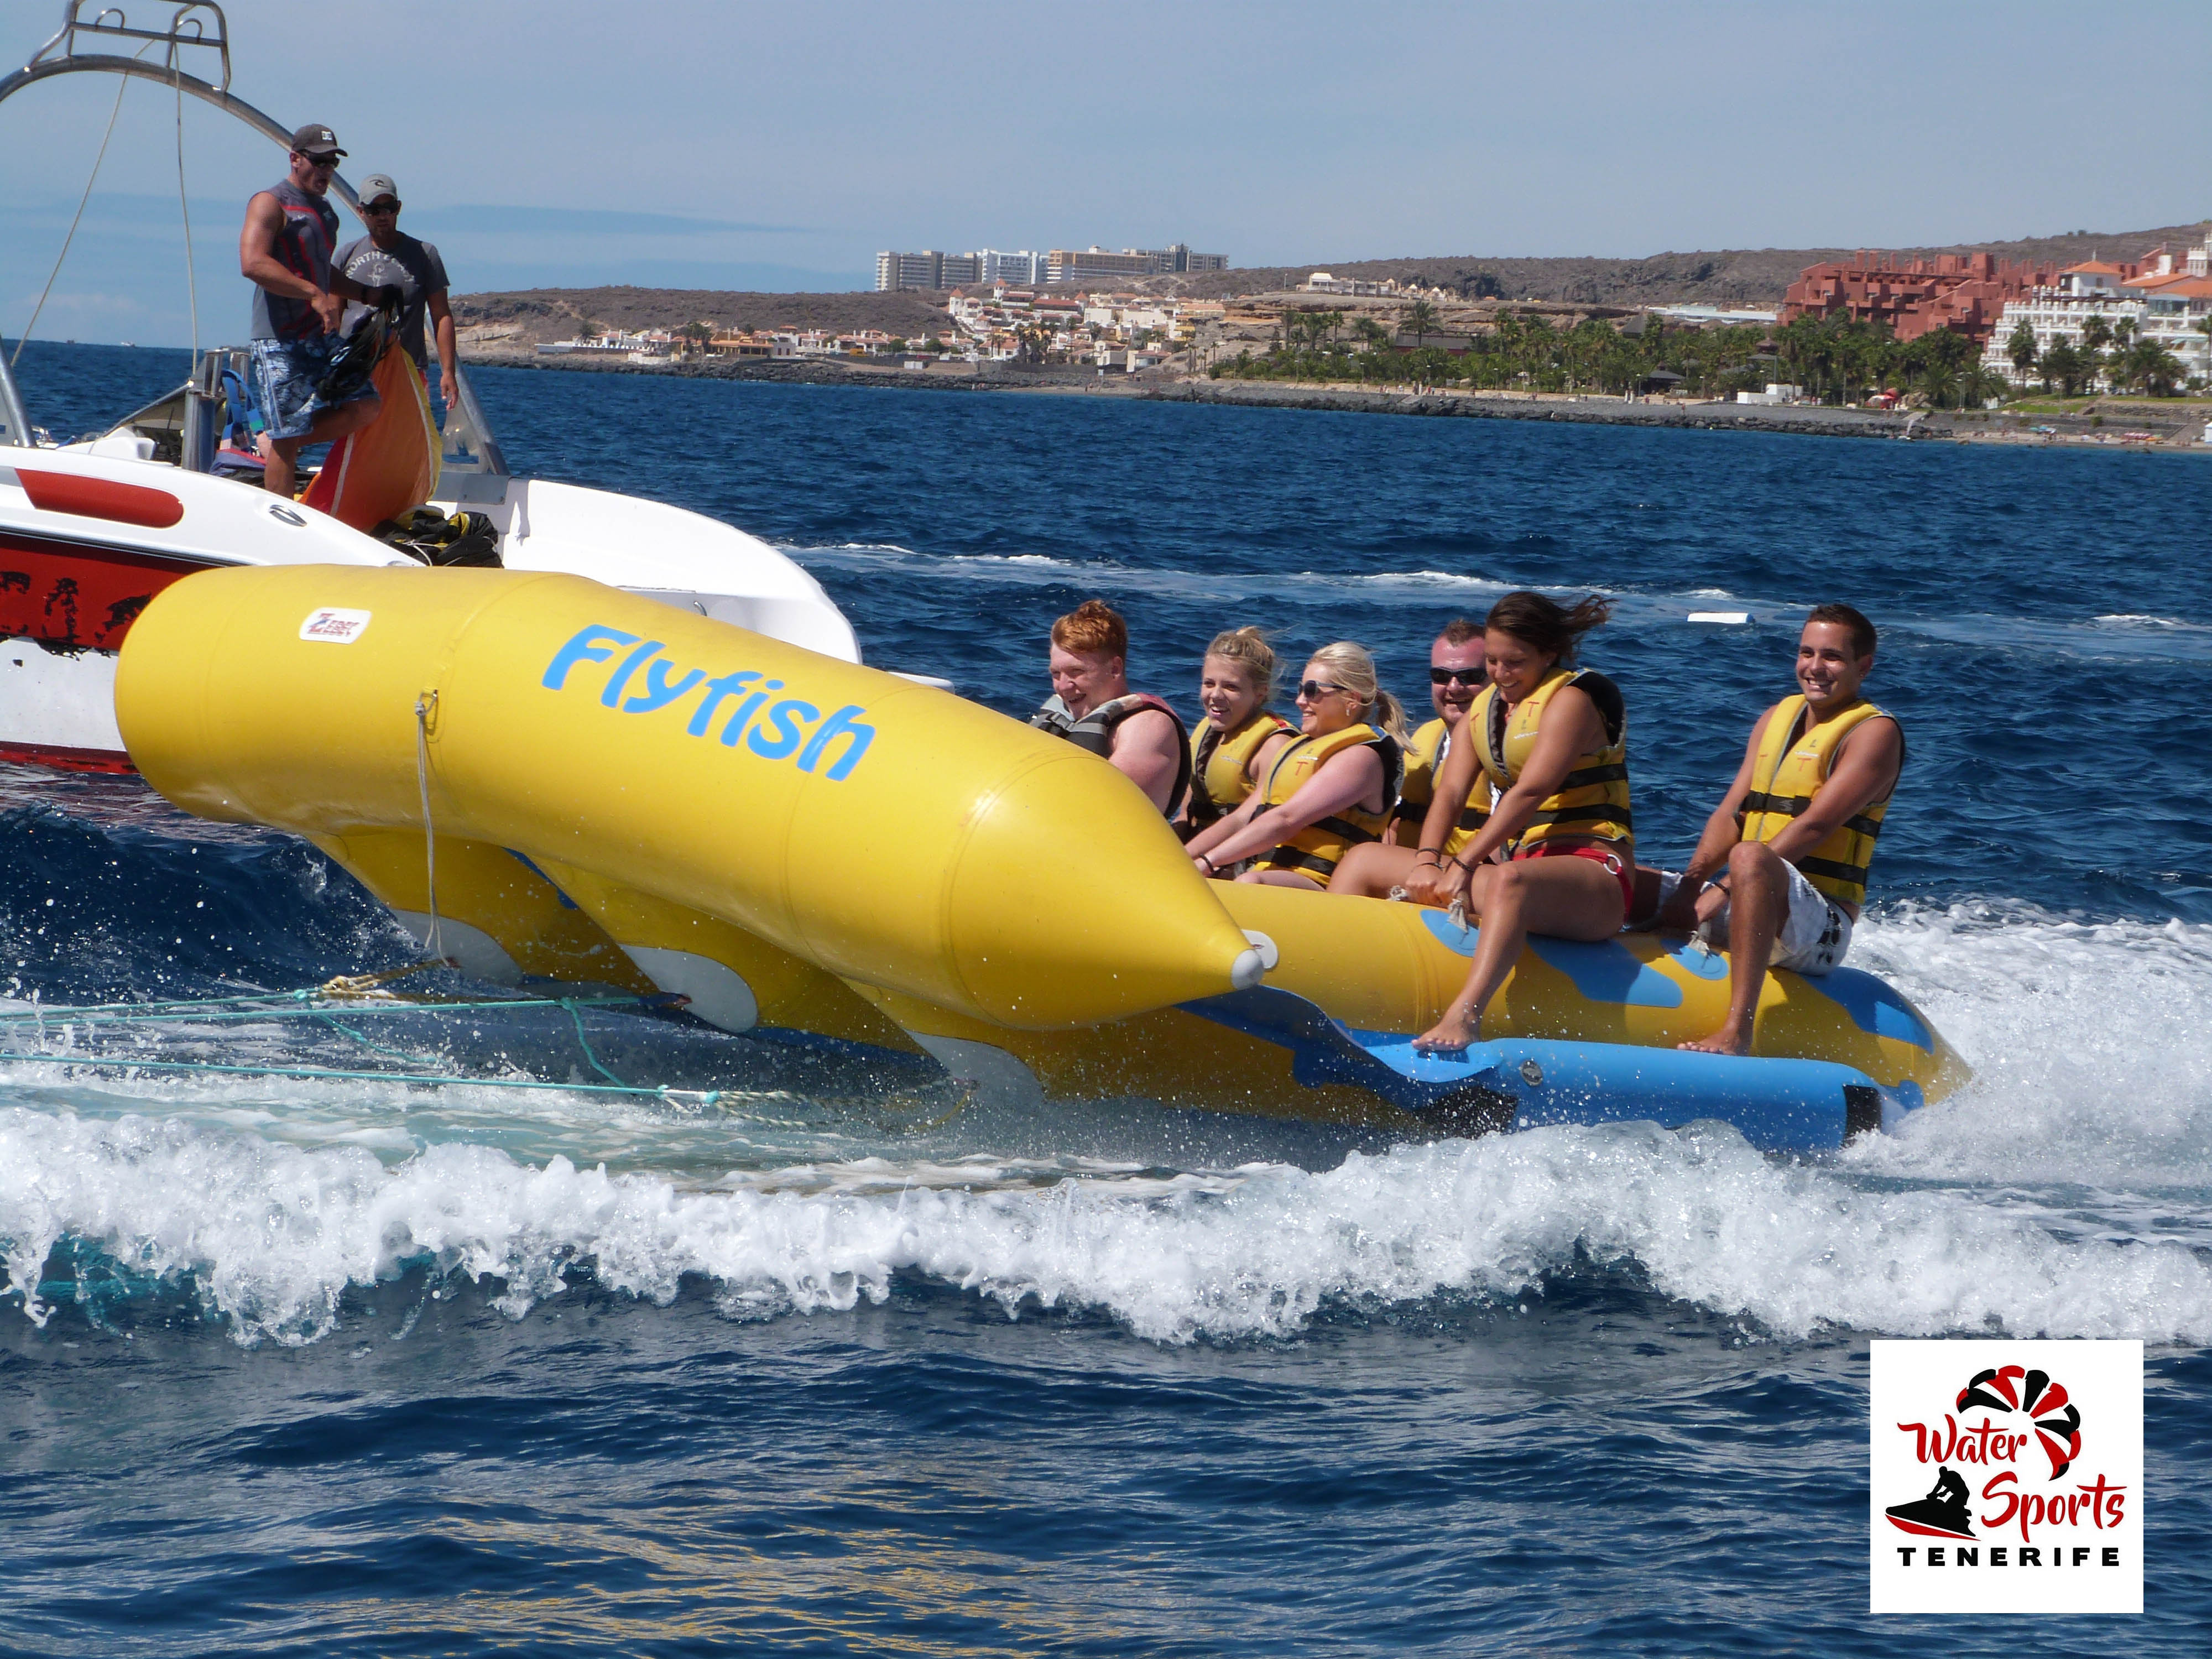 flyfish water sports and activities in costa adeje puerto colon